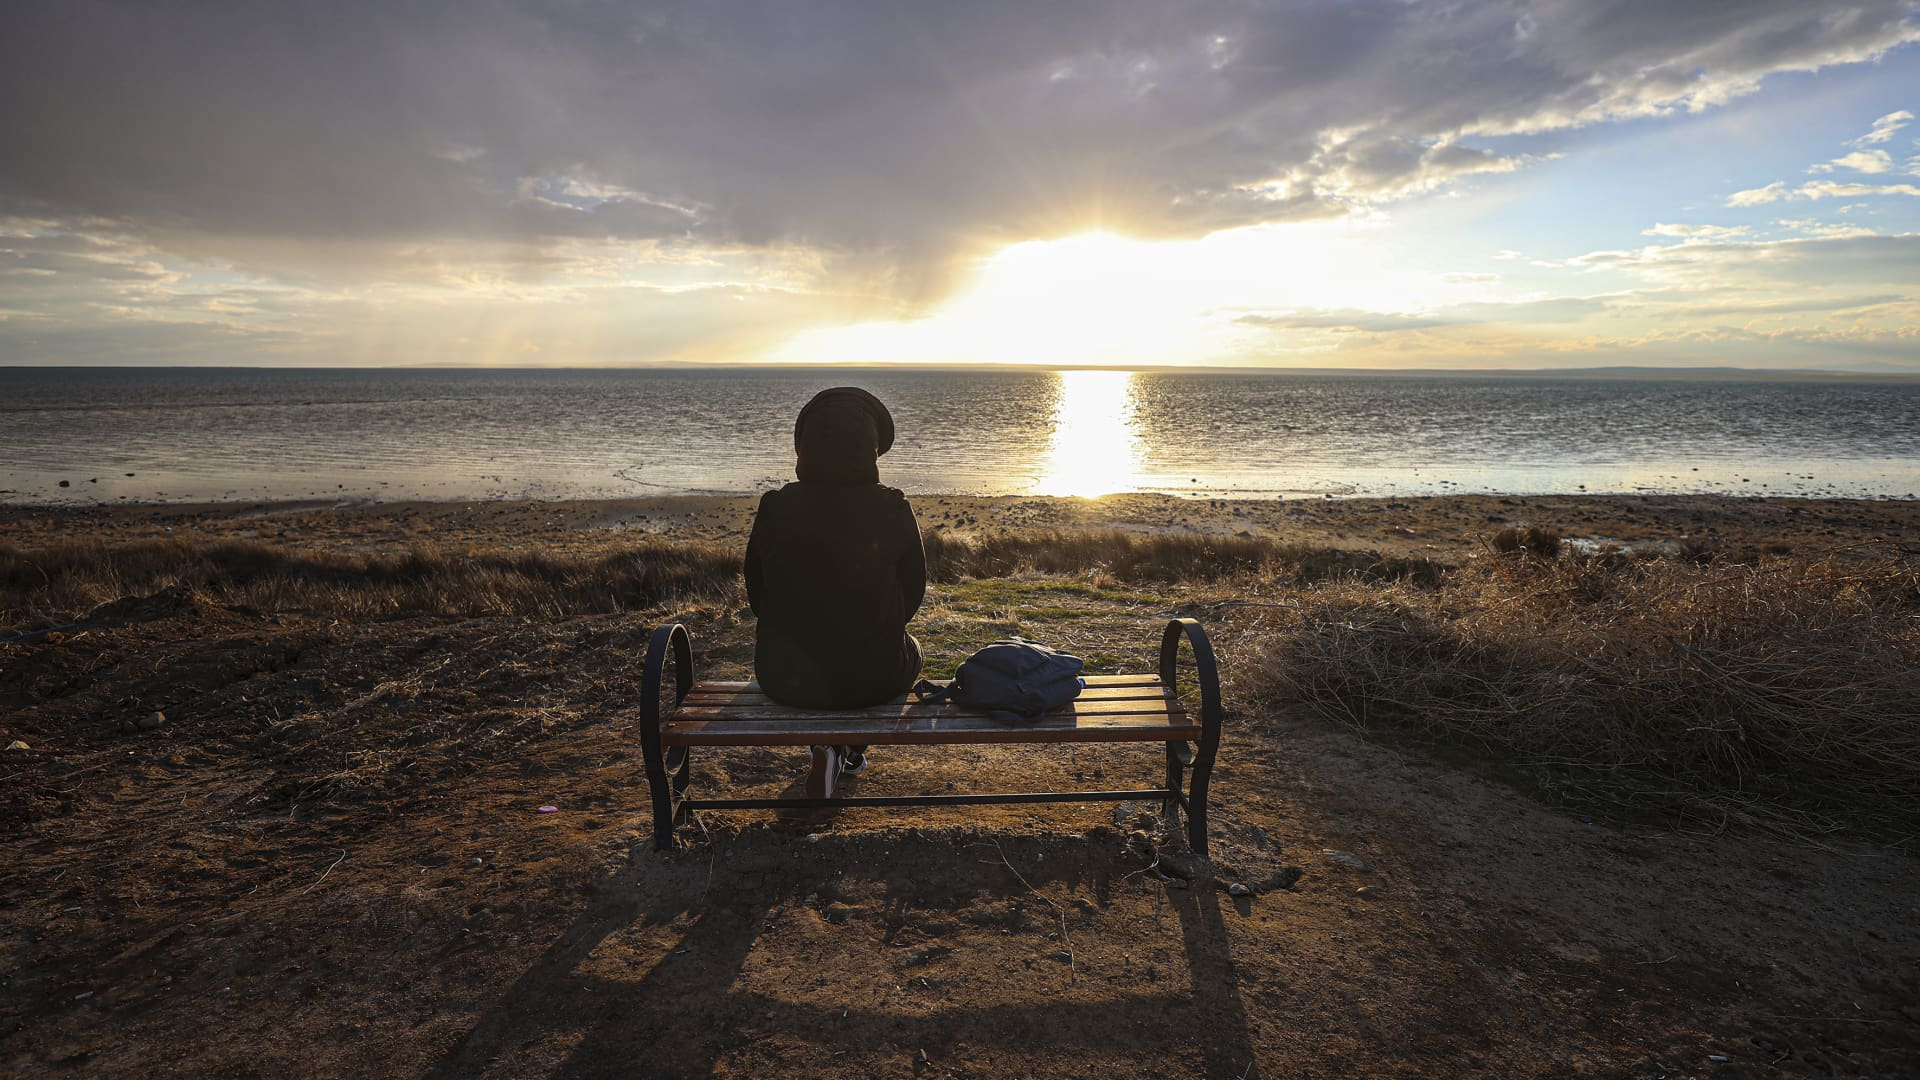 A person enjoys the view while sitting on a bench at the Lake Tuz during sunset in Ankara, Turkey on February 12, 2021.